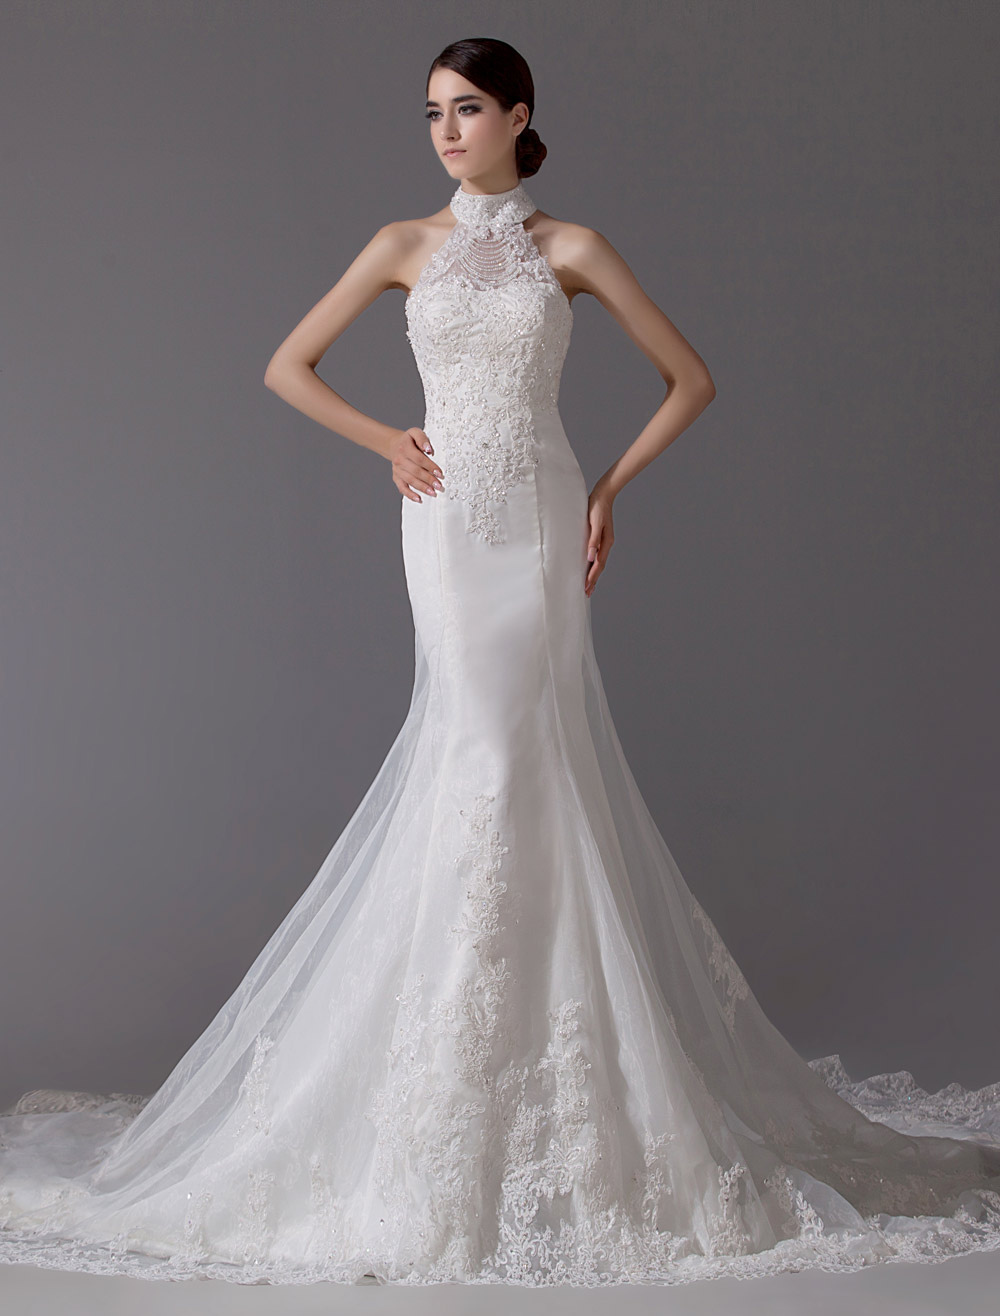 Ivory Wedding Dress Mermaid Backless Beaded Lace Up Wedding Gown